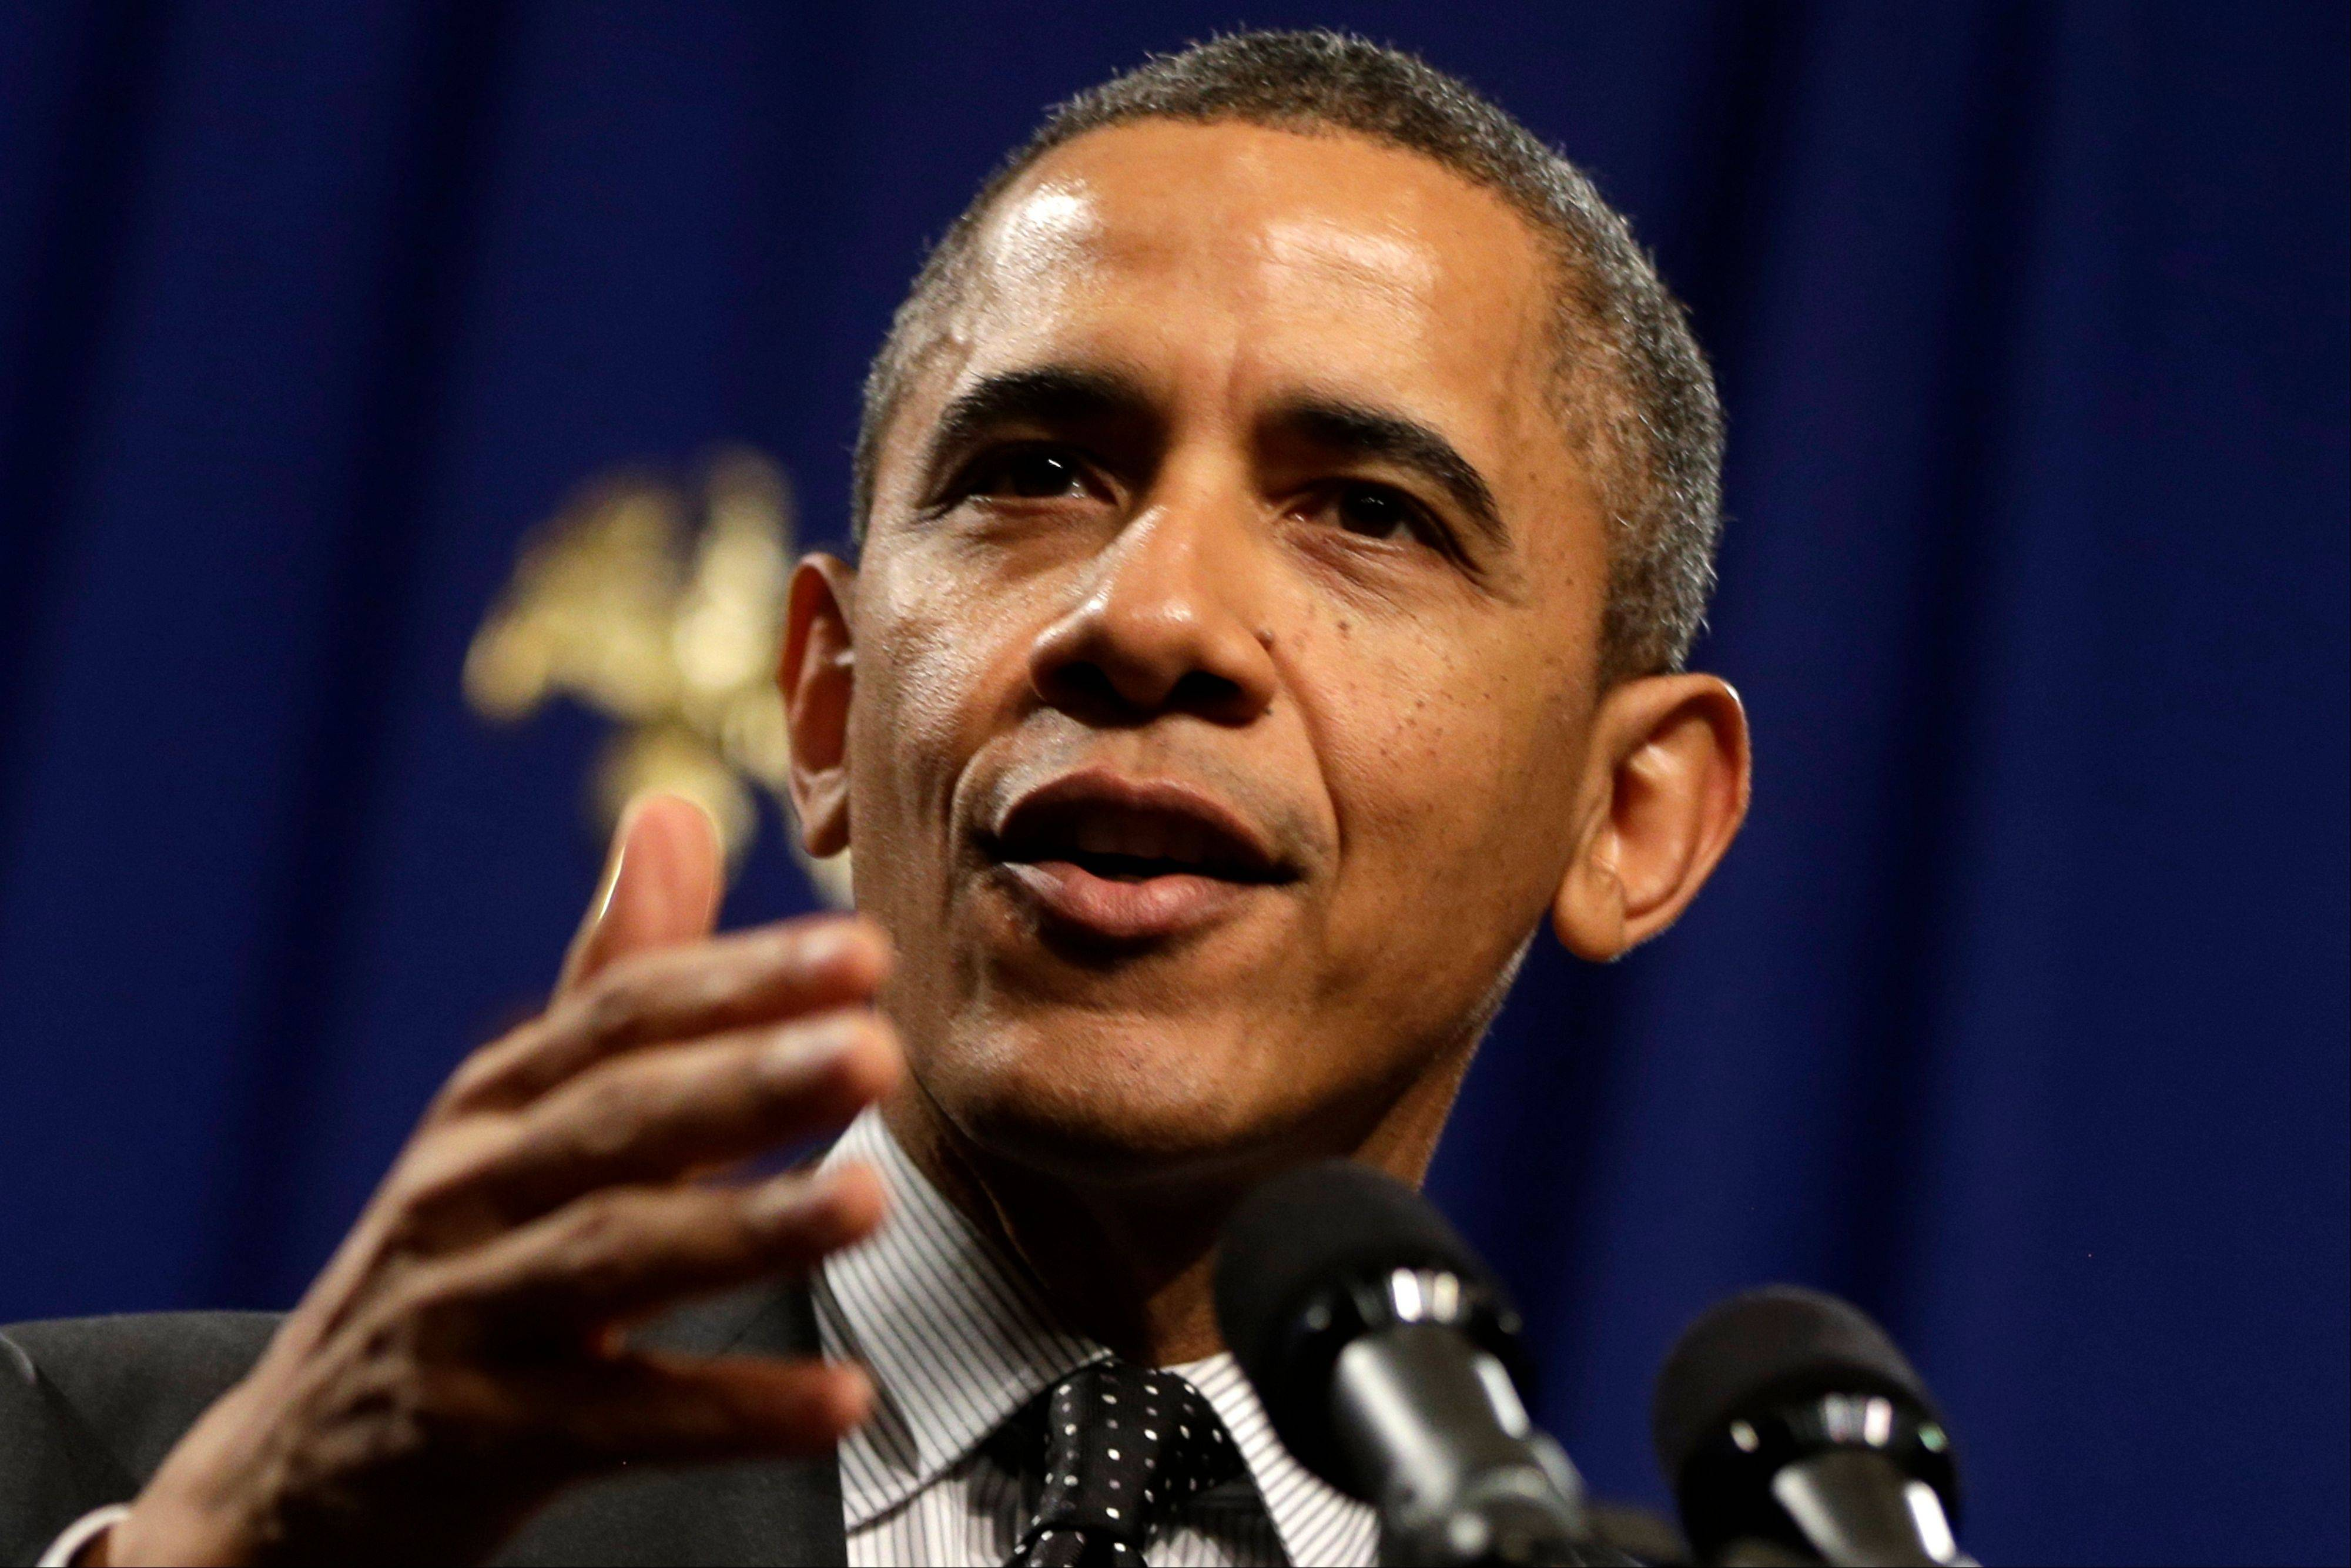 In this Feb. 7 file photo, President Barack Obama speaks at the House Democratic Issues Conference in Lansdowne, Va. For all of his liberal positions on the environment, taxes and health care, Obama is a hawk when it comes to the war on terror.